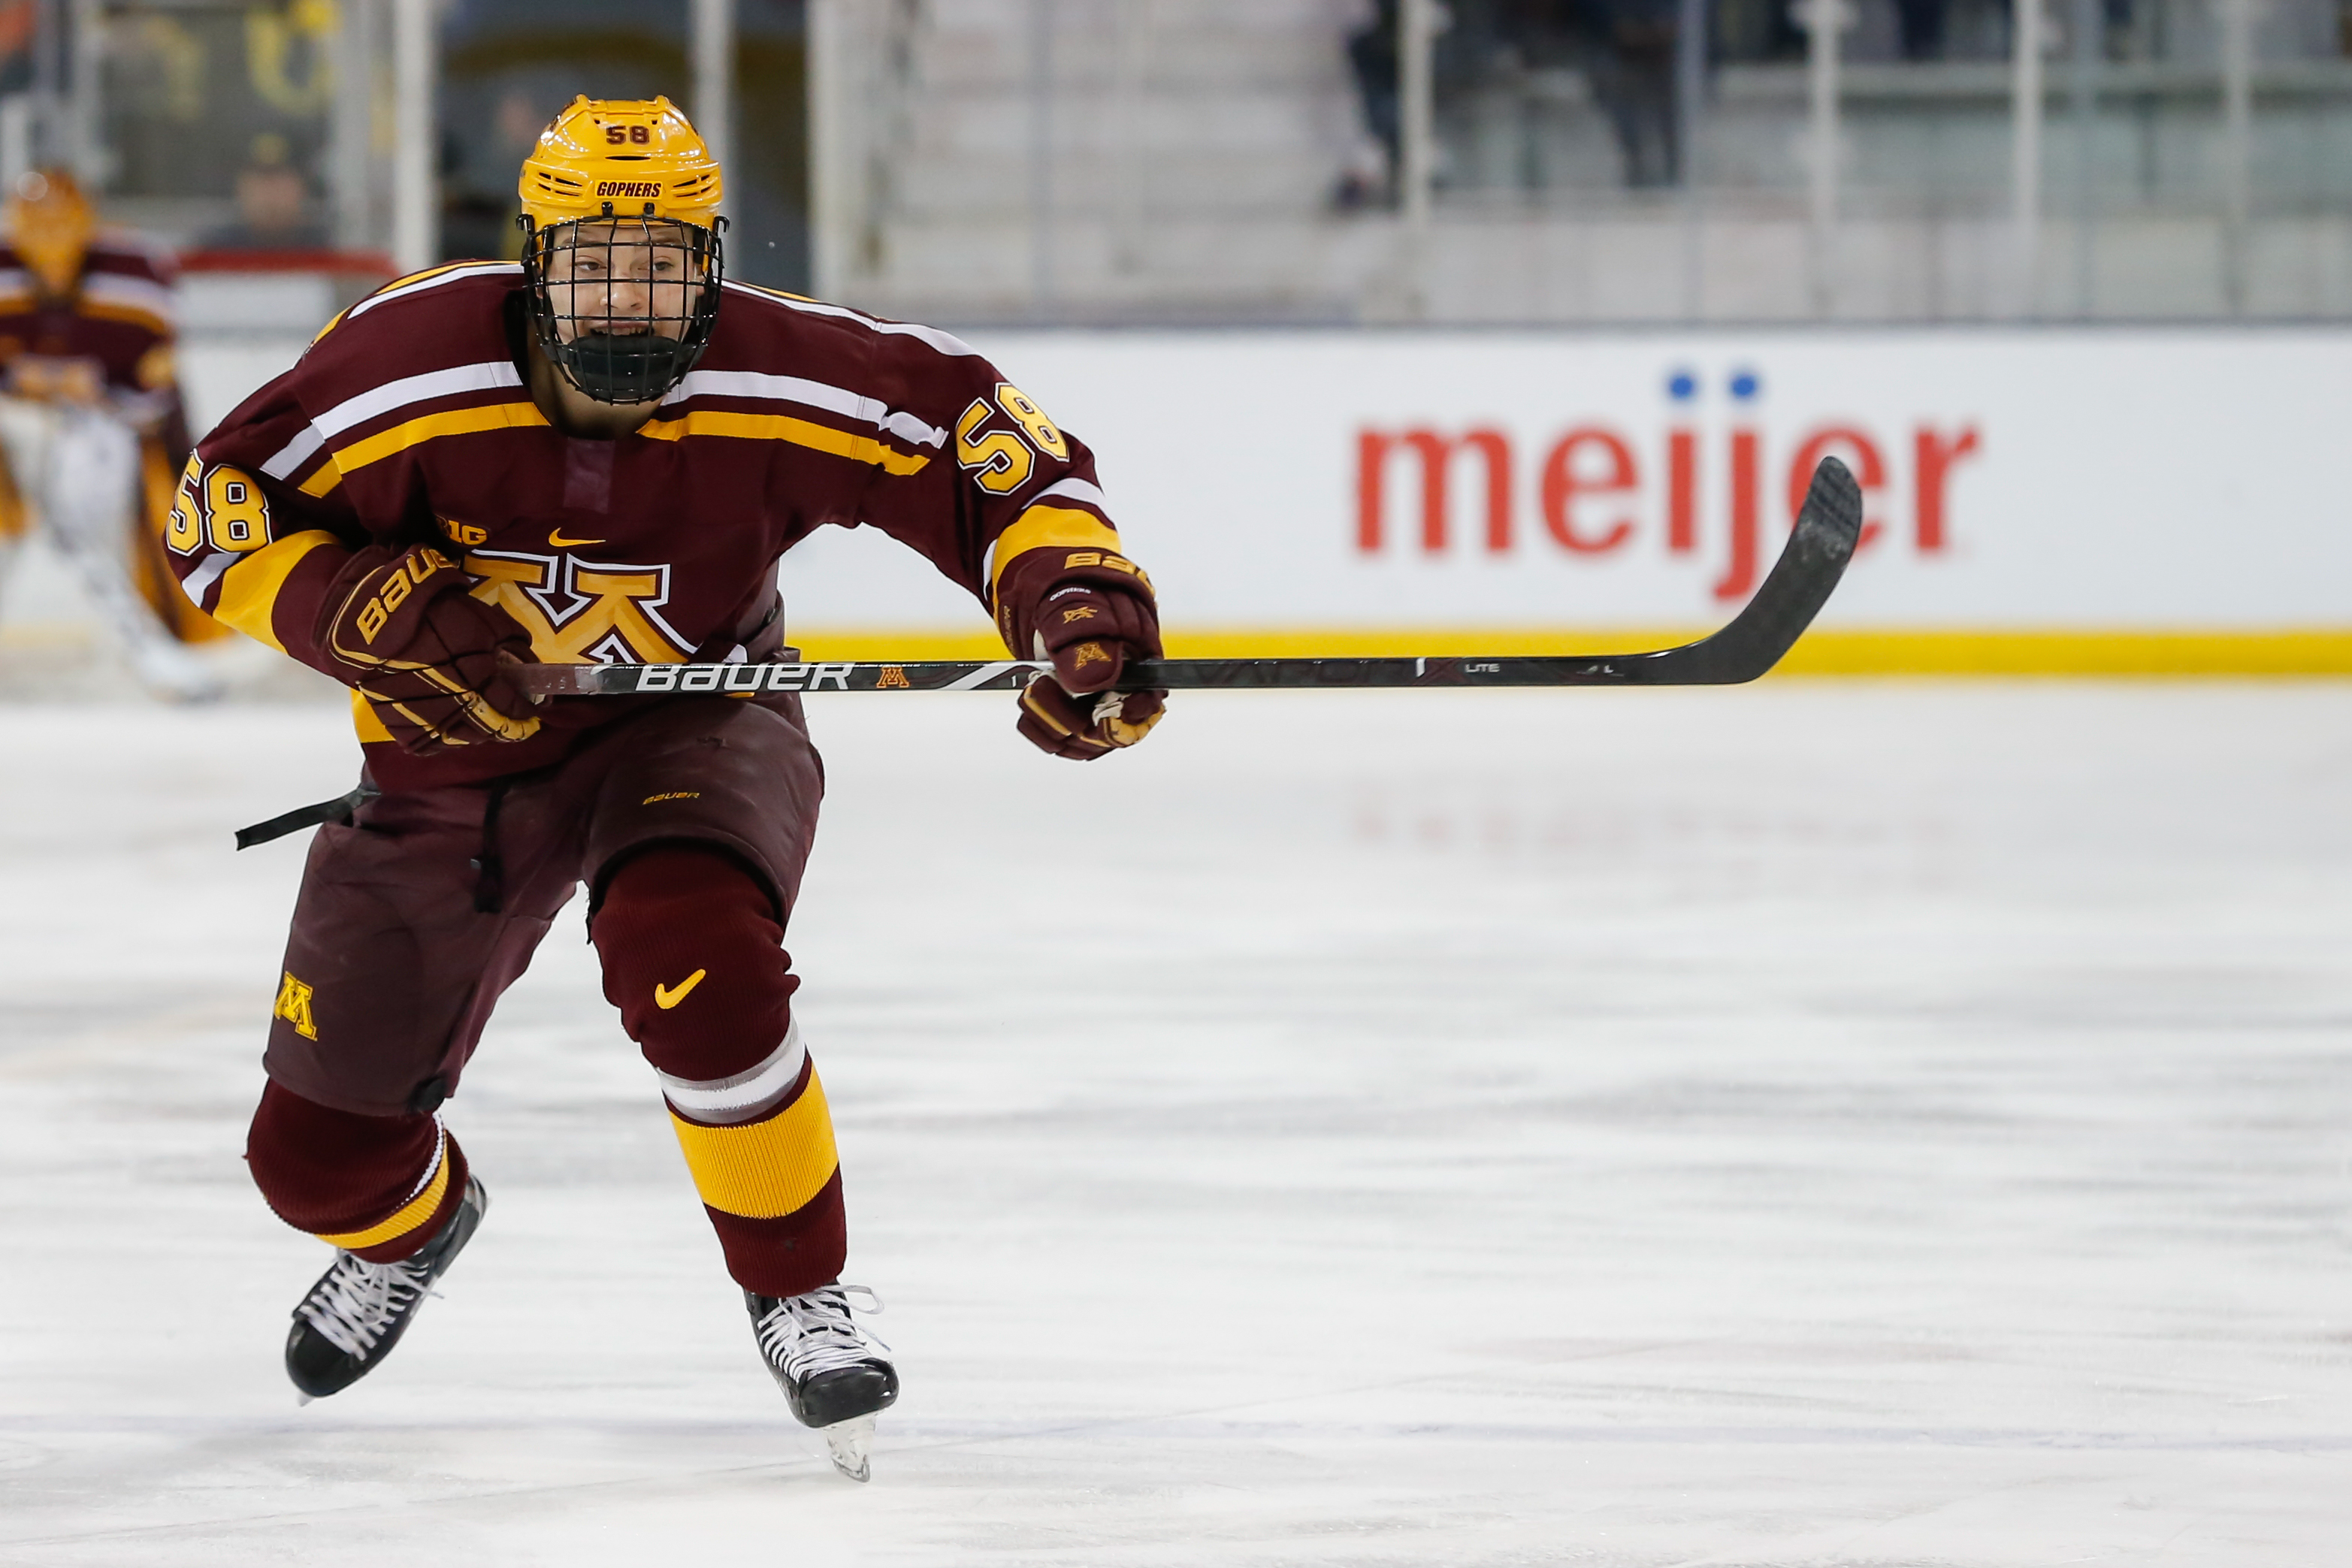 Minnesota Golden Gophers forward Sampo Ranta (58) chases after the puck during a regular season Big 10 Conference hockey game between the Minnesota Golden Gophers and Michigan Wolverines on December 8, 2018 at Yost Ice Arena in Ann Arbor, Michigan.